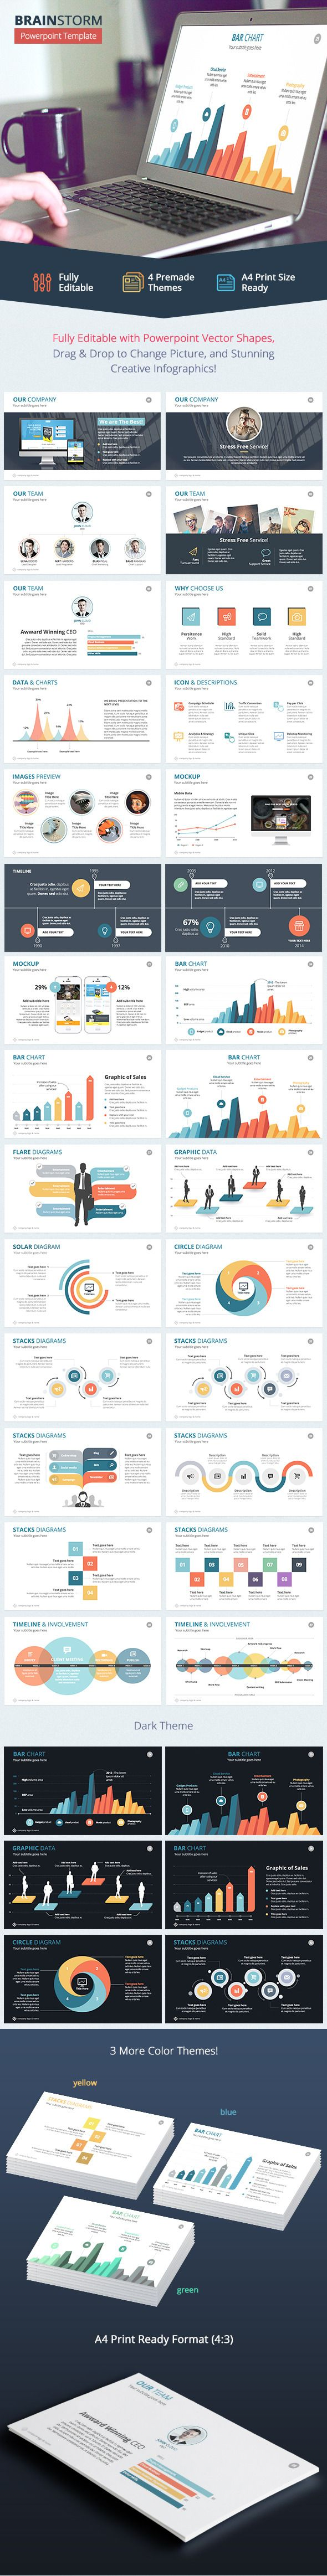 Brainstorm - Powerpoint Template #powerpoint #powerpointtemplate #presentation Download: http://graphicriver.net/item/brainstorm-powerpoint-template/9631174?ref=ksioks